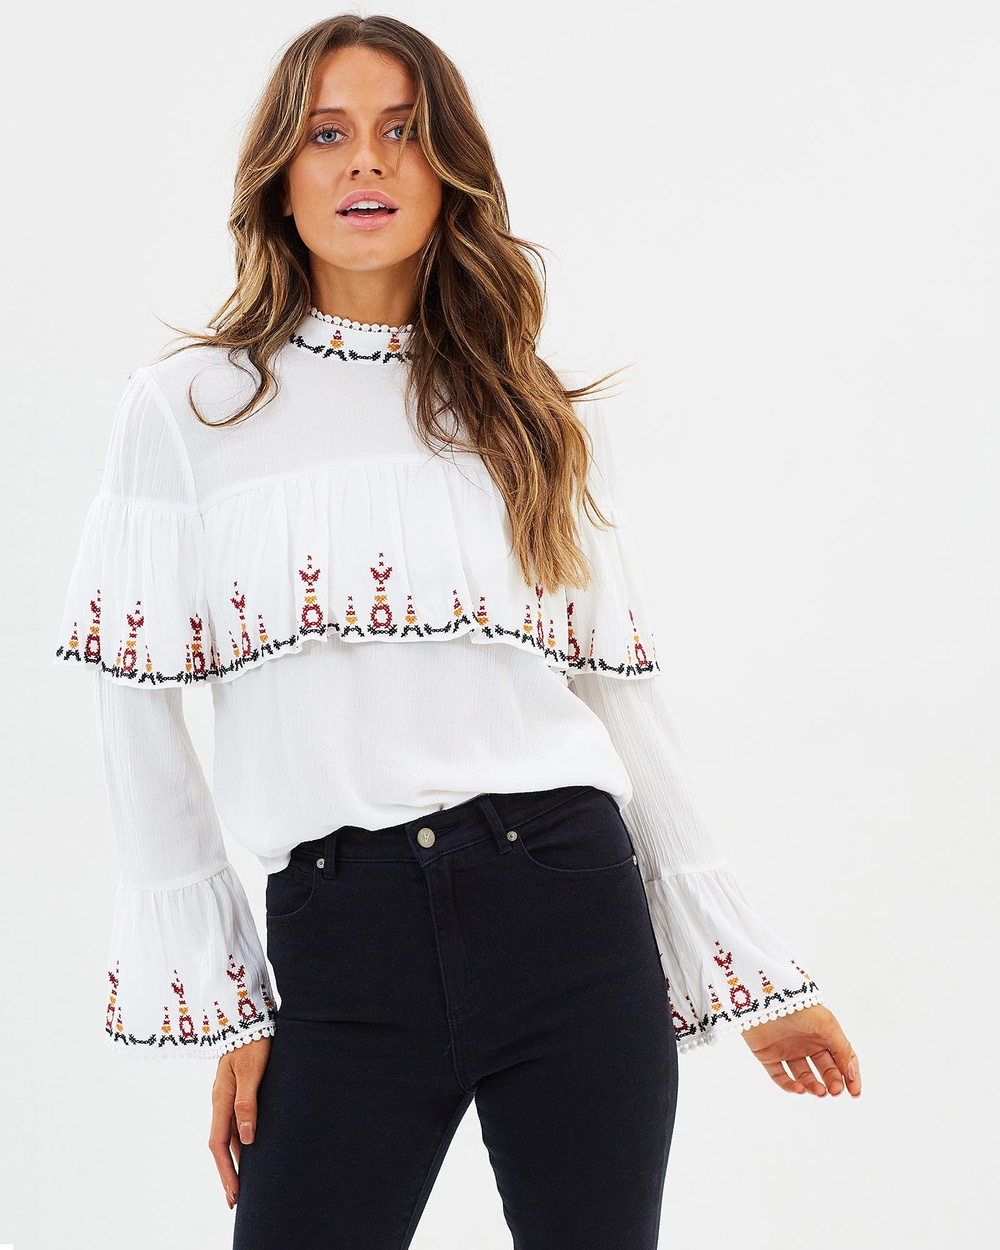 Gysette Hana Embroidered Top Tops Winter White Hana Embroidered Top